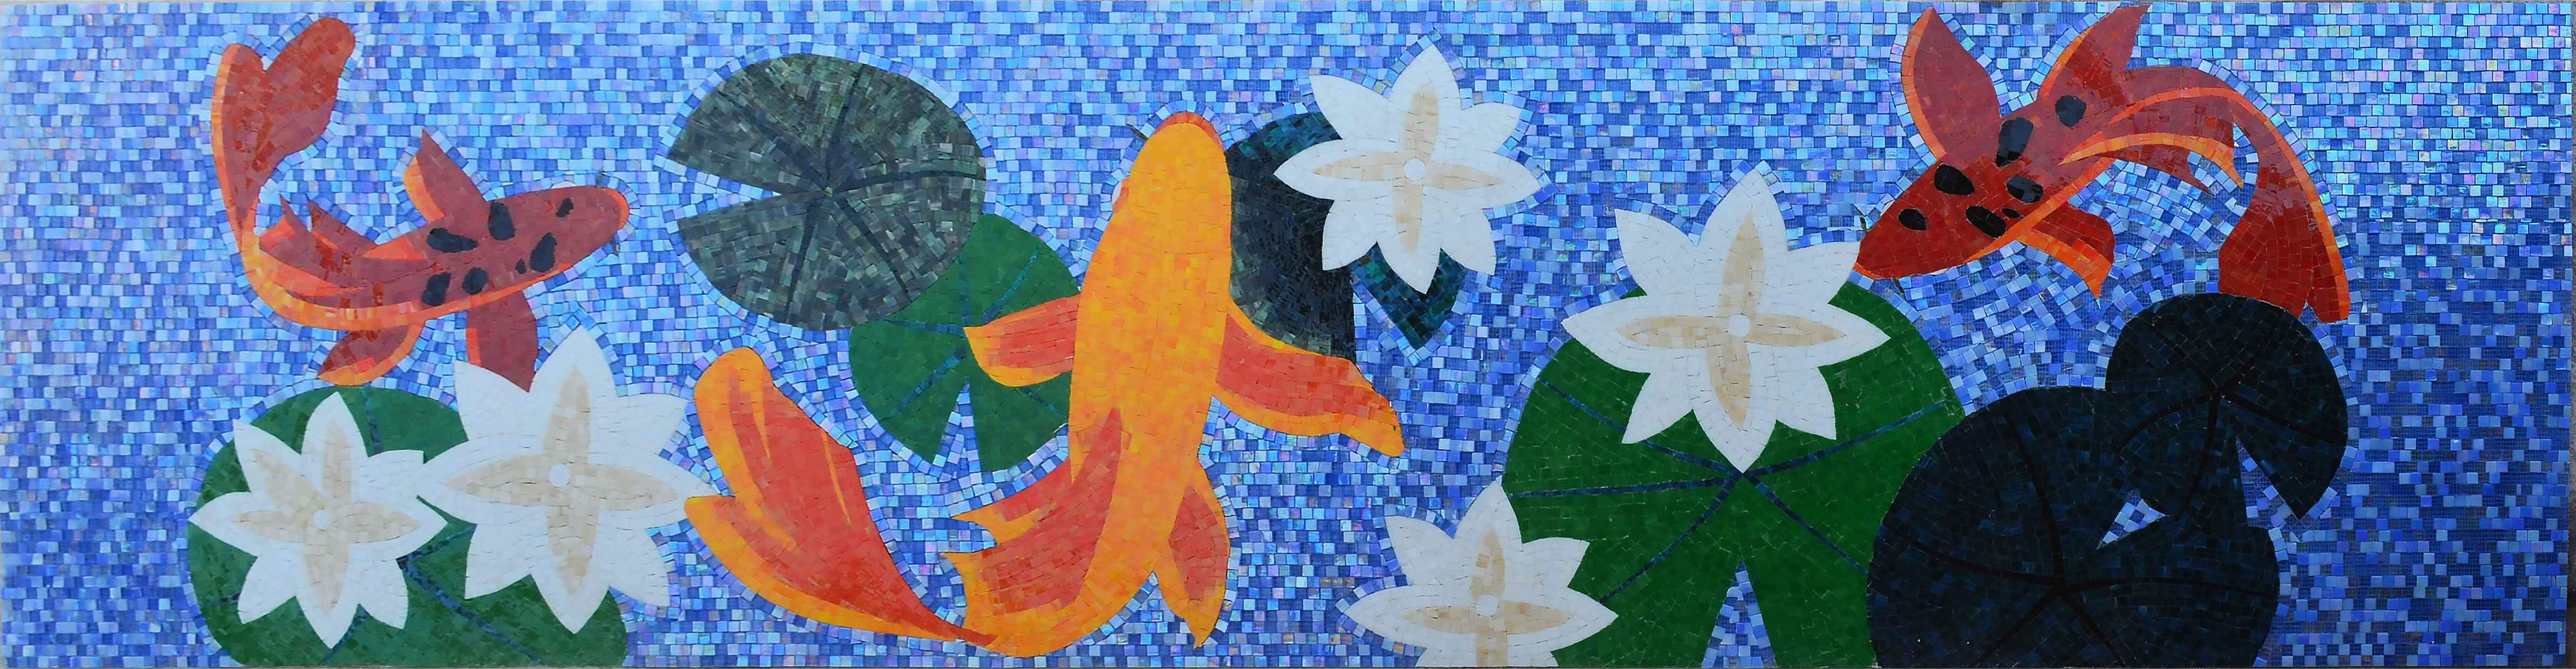 Pond With Fishes Mosaic Art Pic